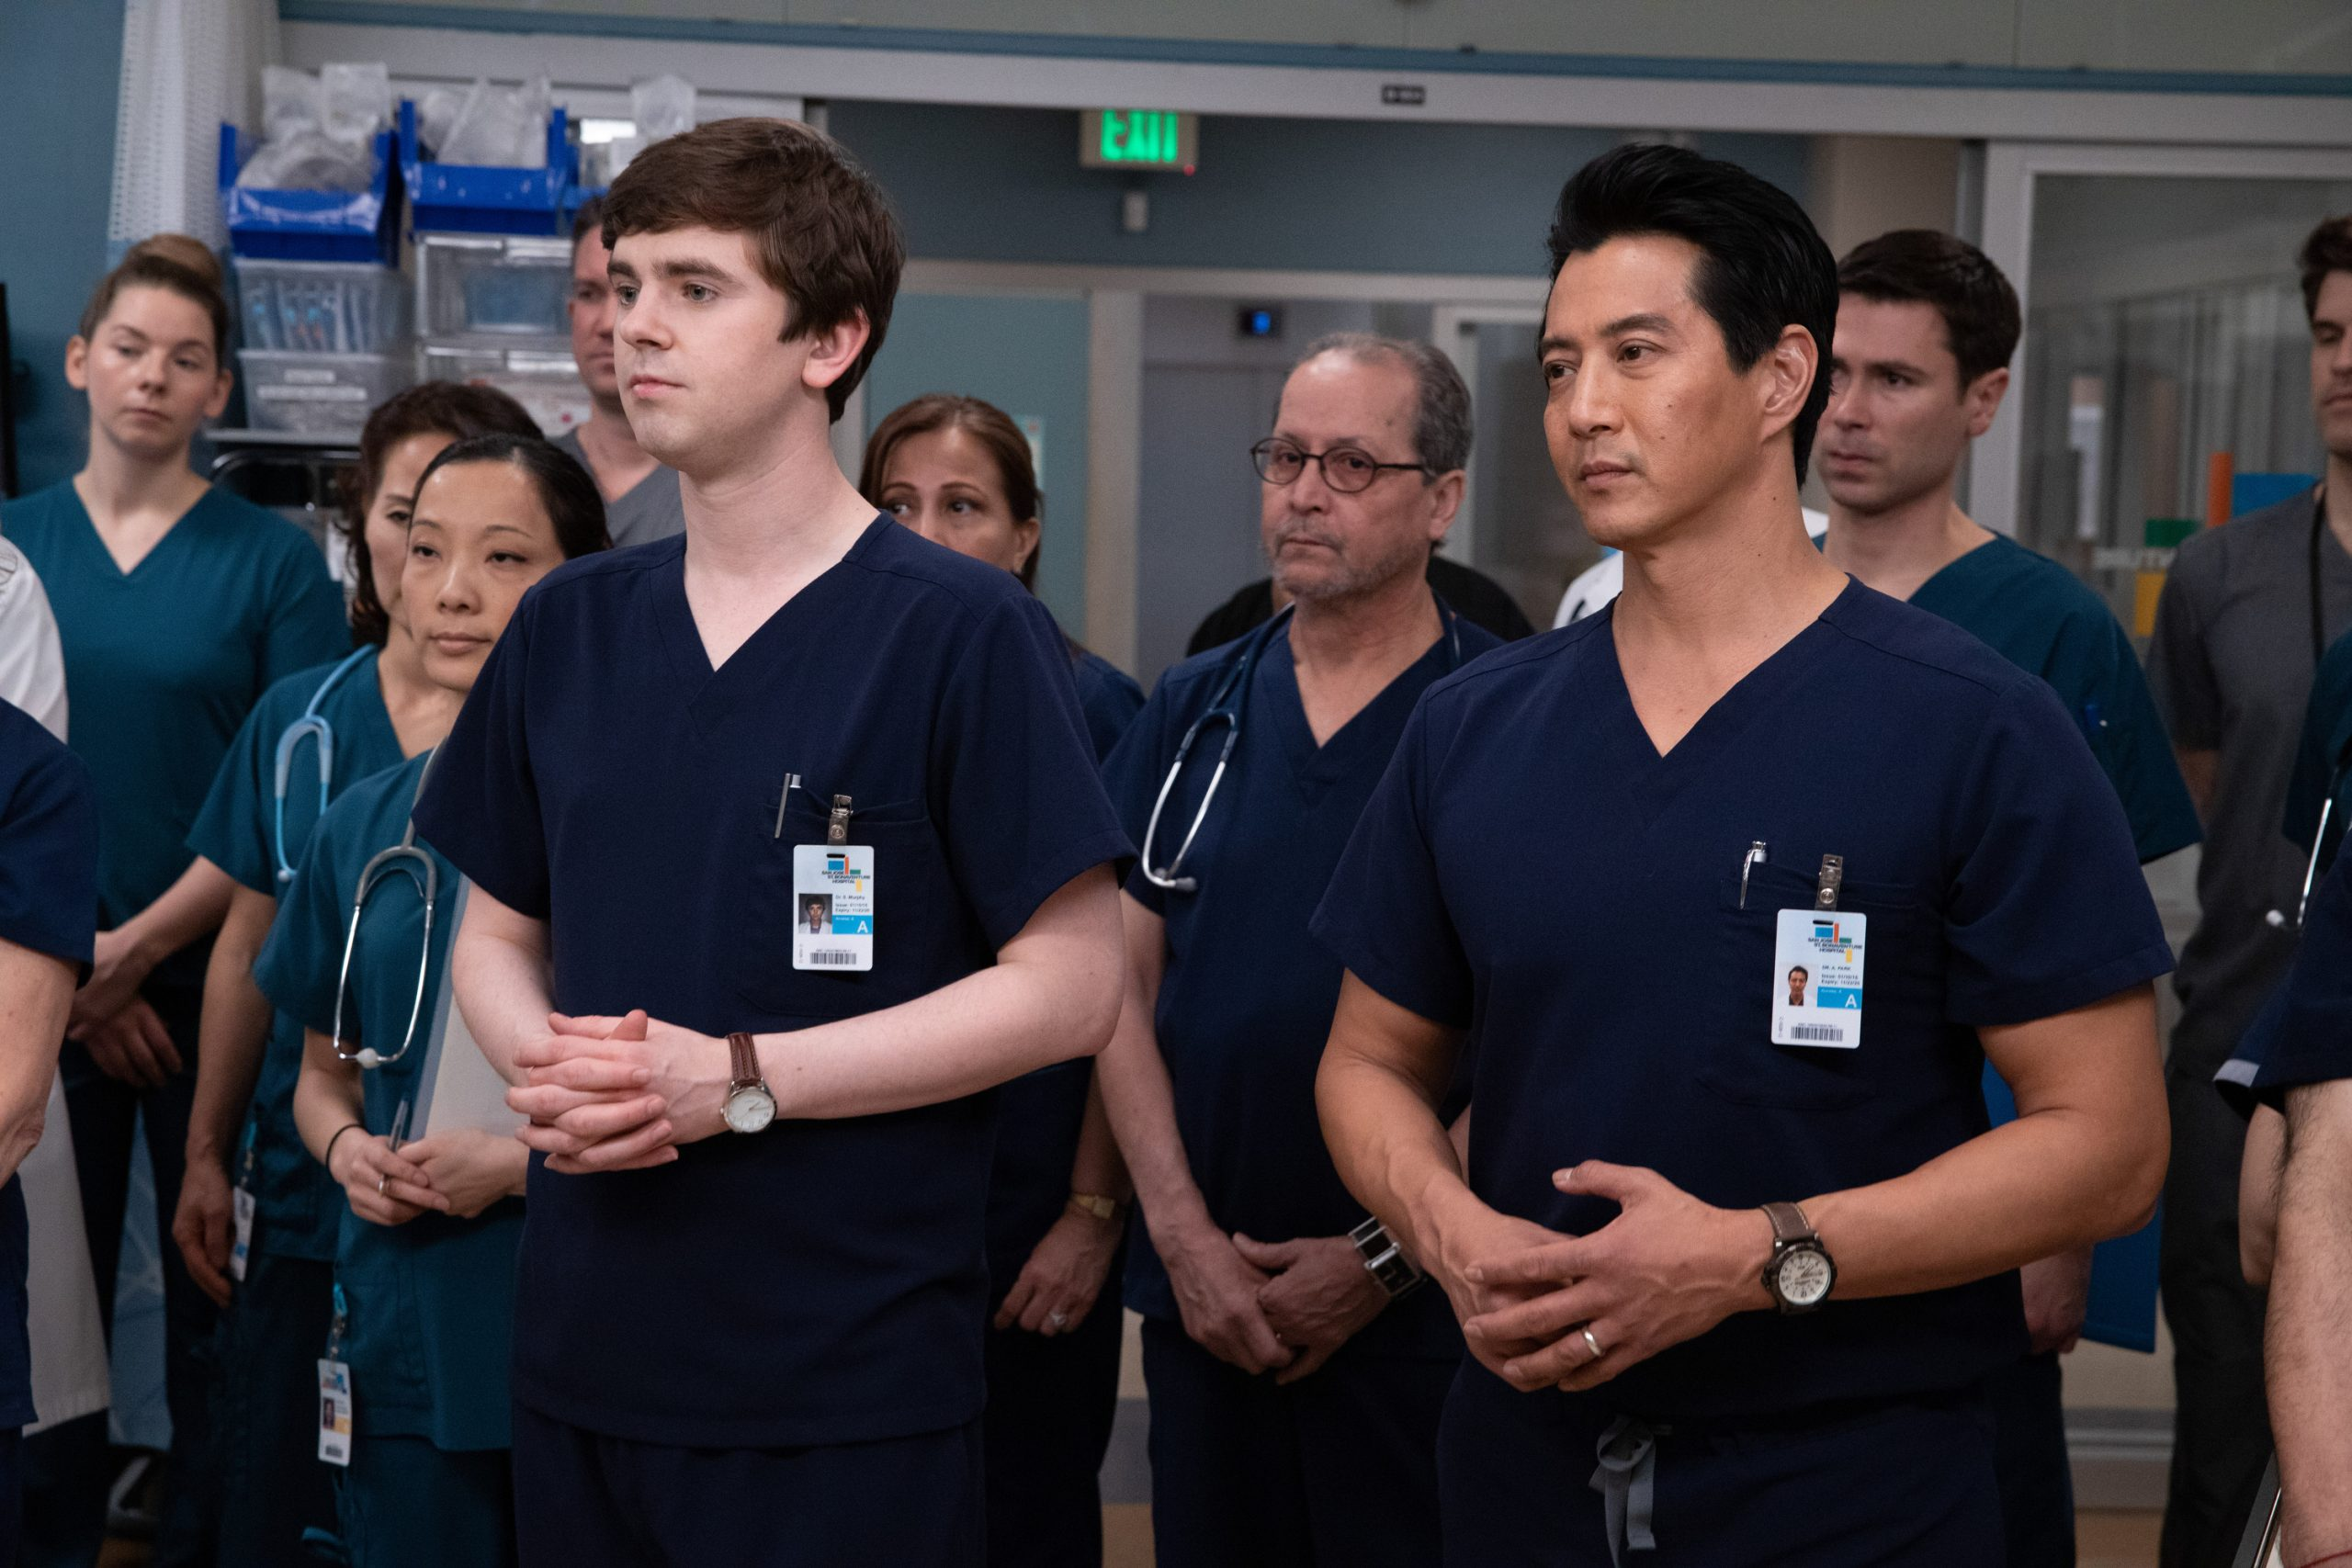 The Good Doctor Season 4: Release Date, Cast and Crew